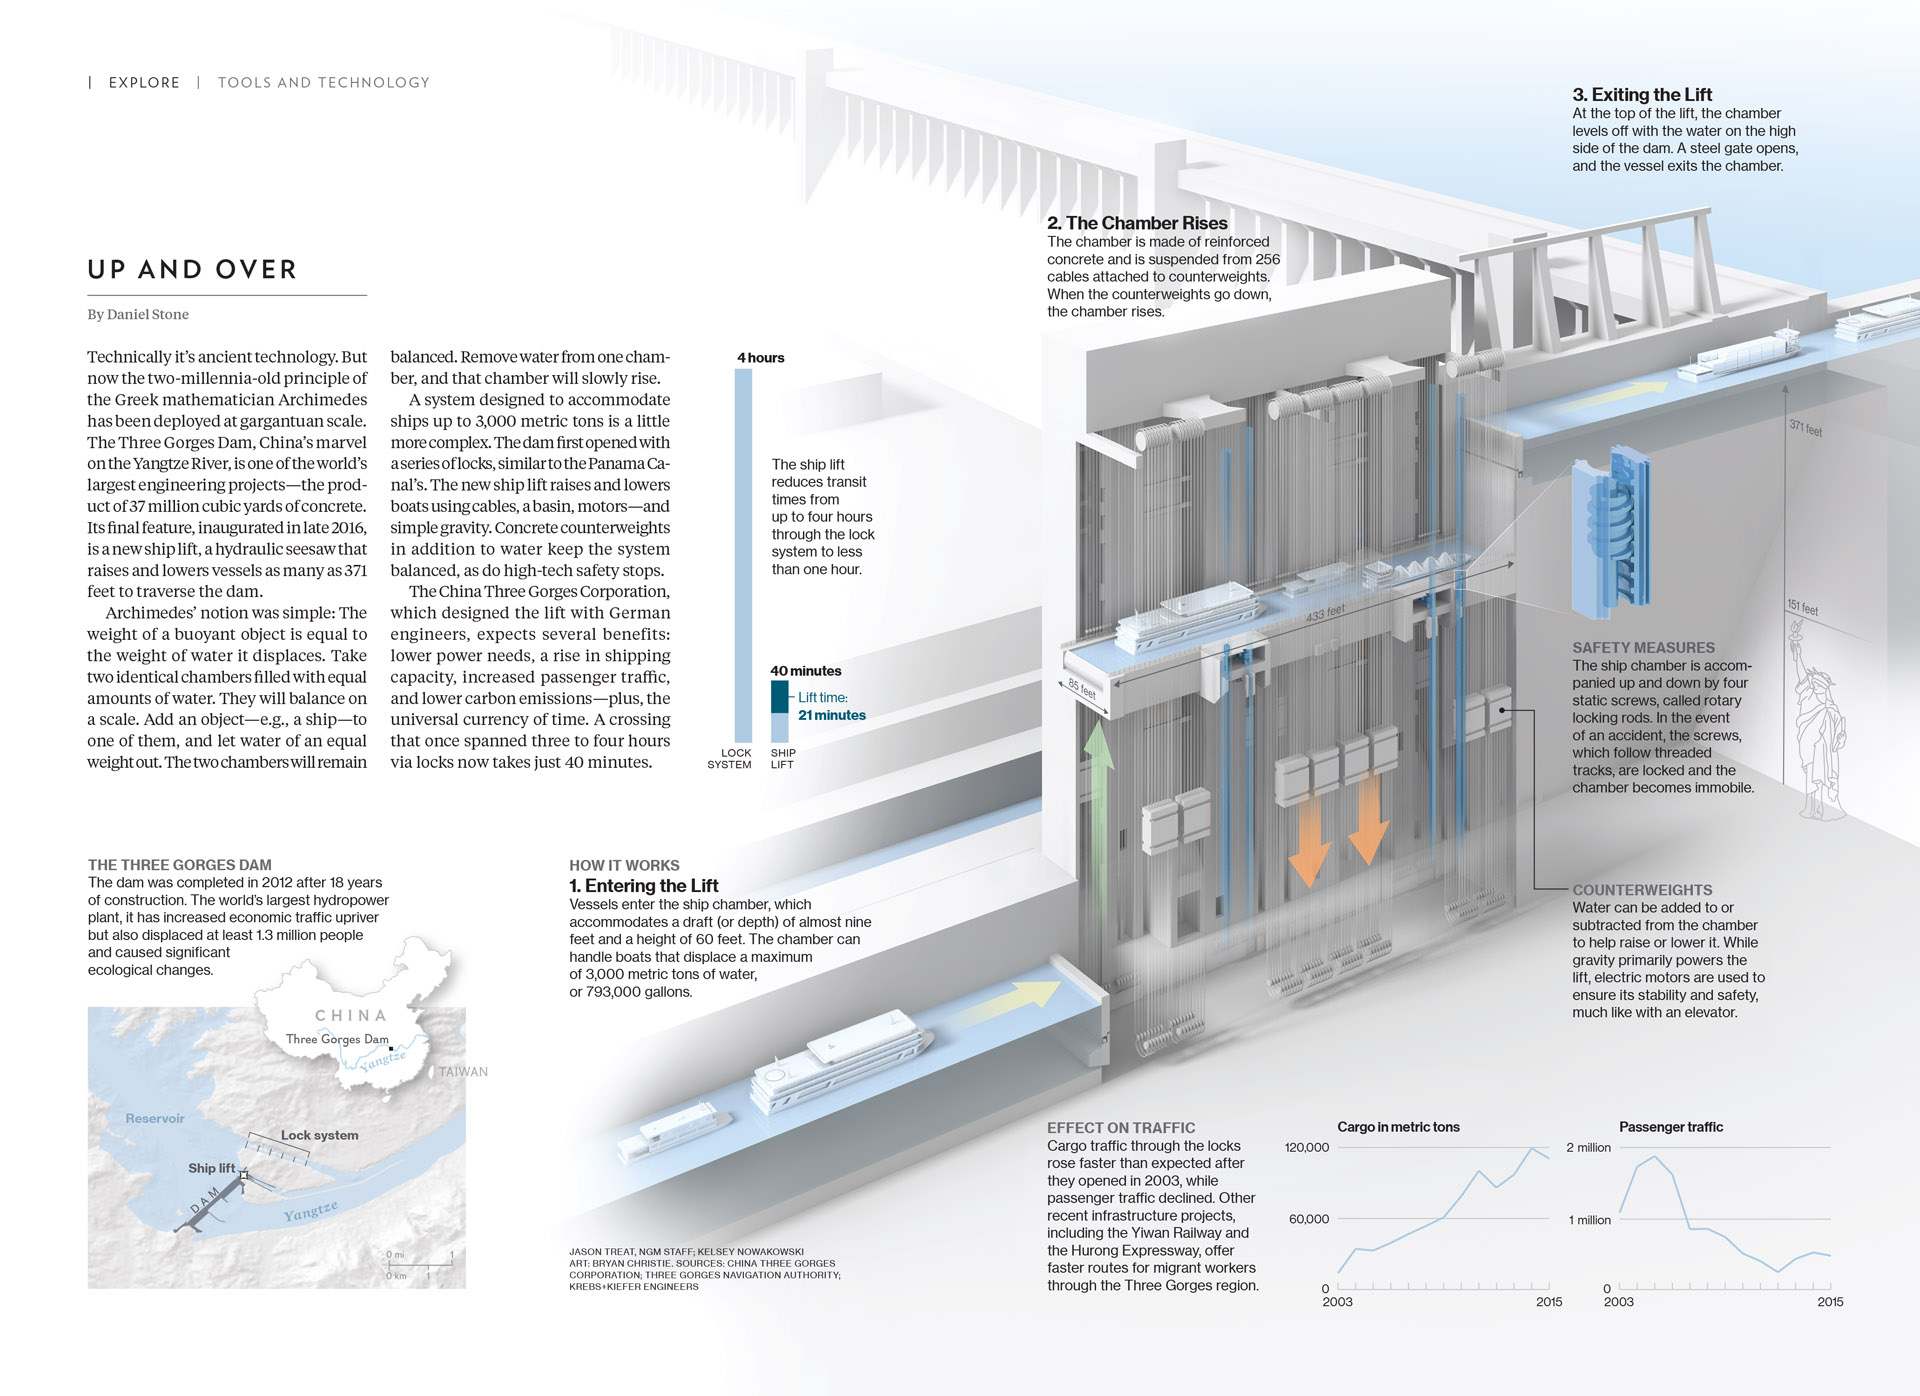 nat_geo_shiplift_grfx_page_layout.jpg